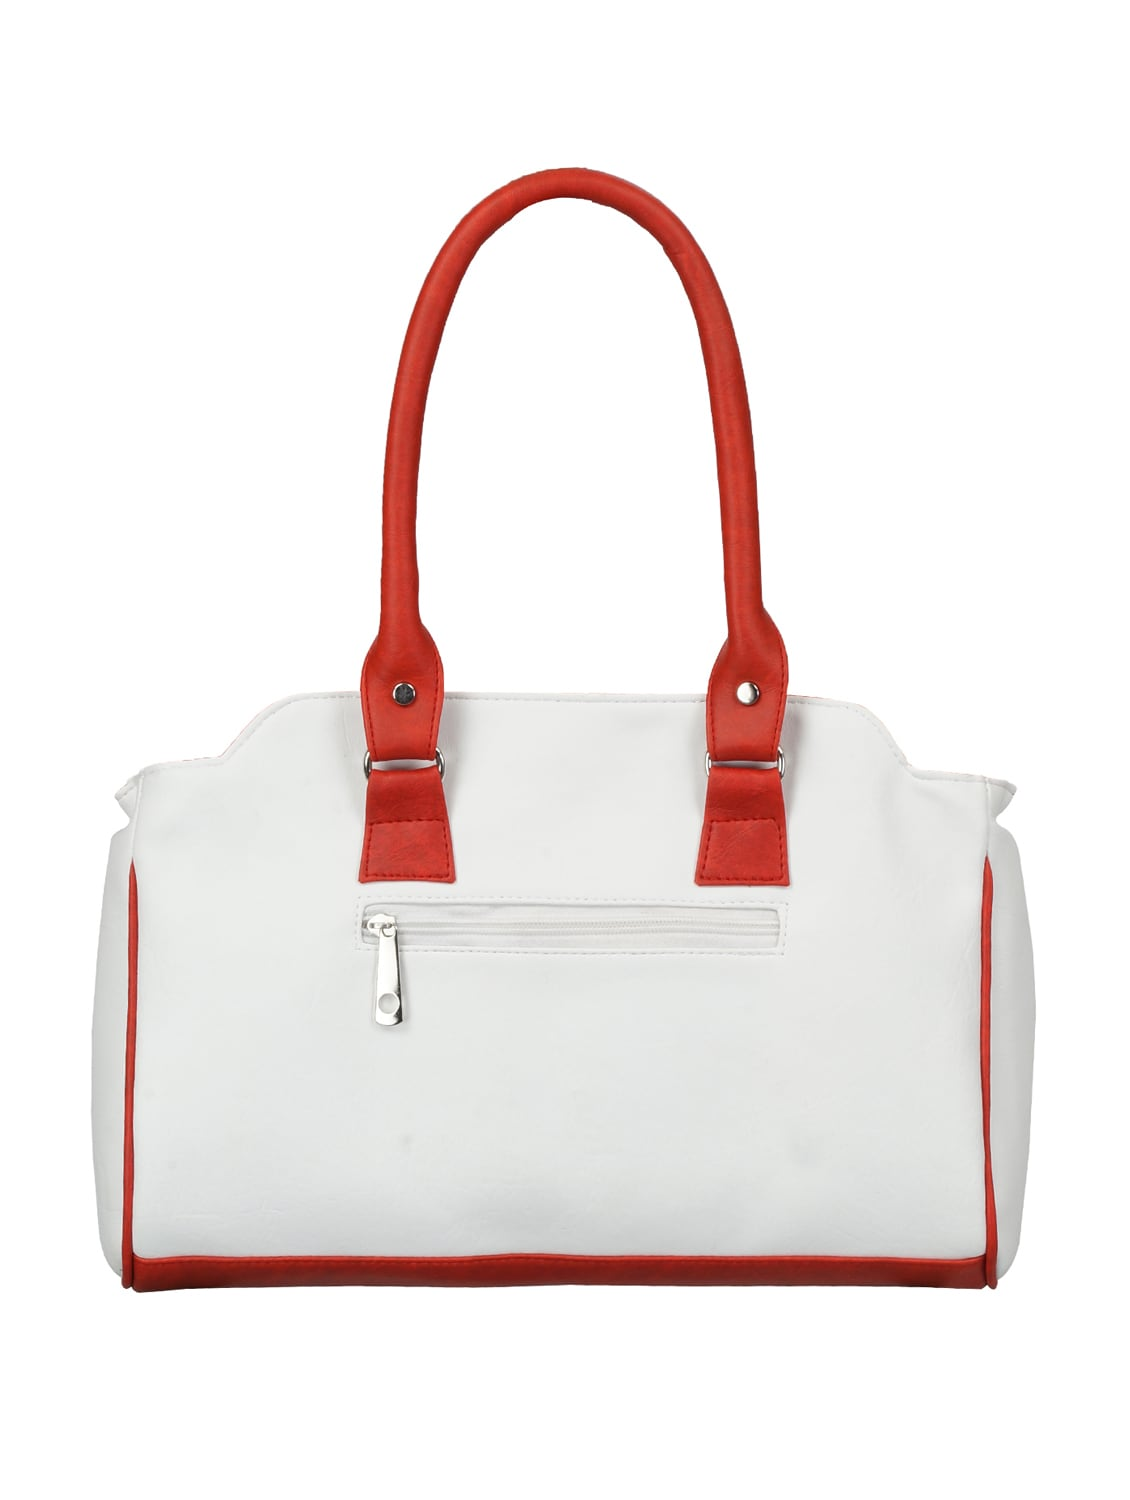 aa12d4b165a Buy White Leatherette Handbag by Fantosy - Online shopping for Handbags in  India